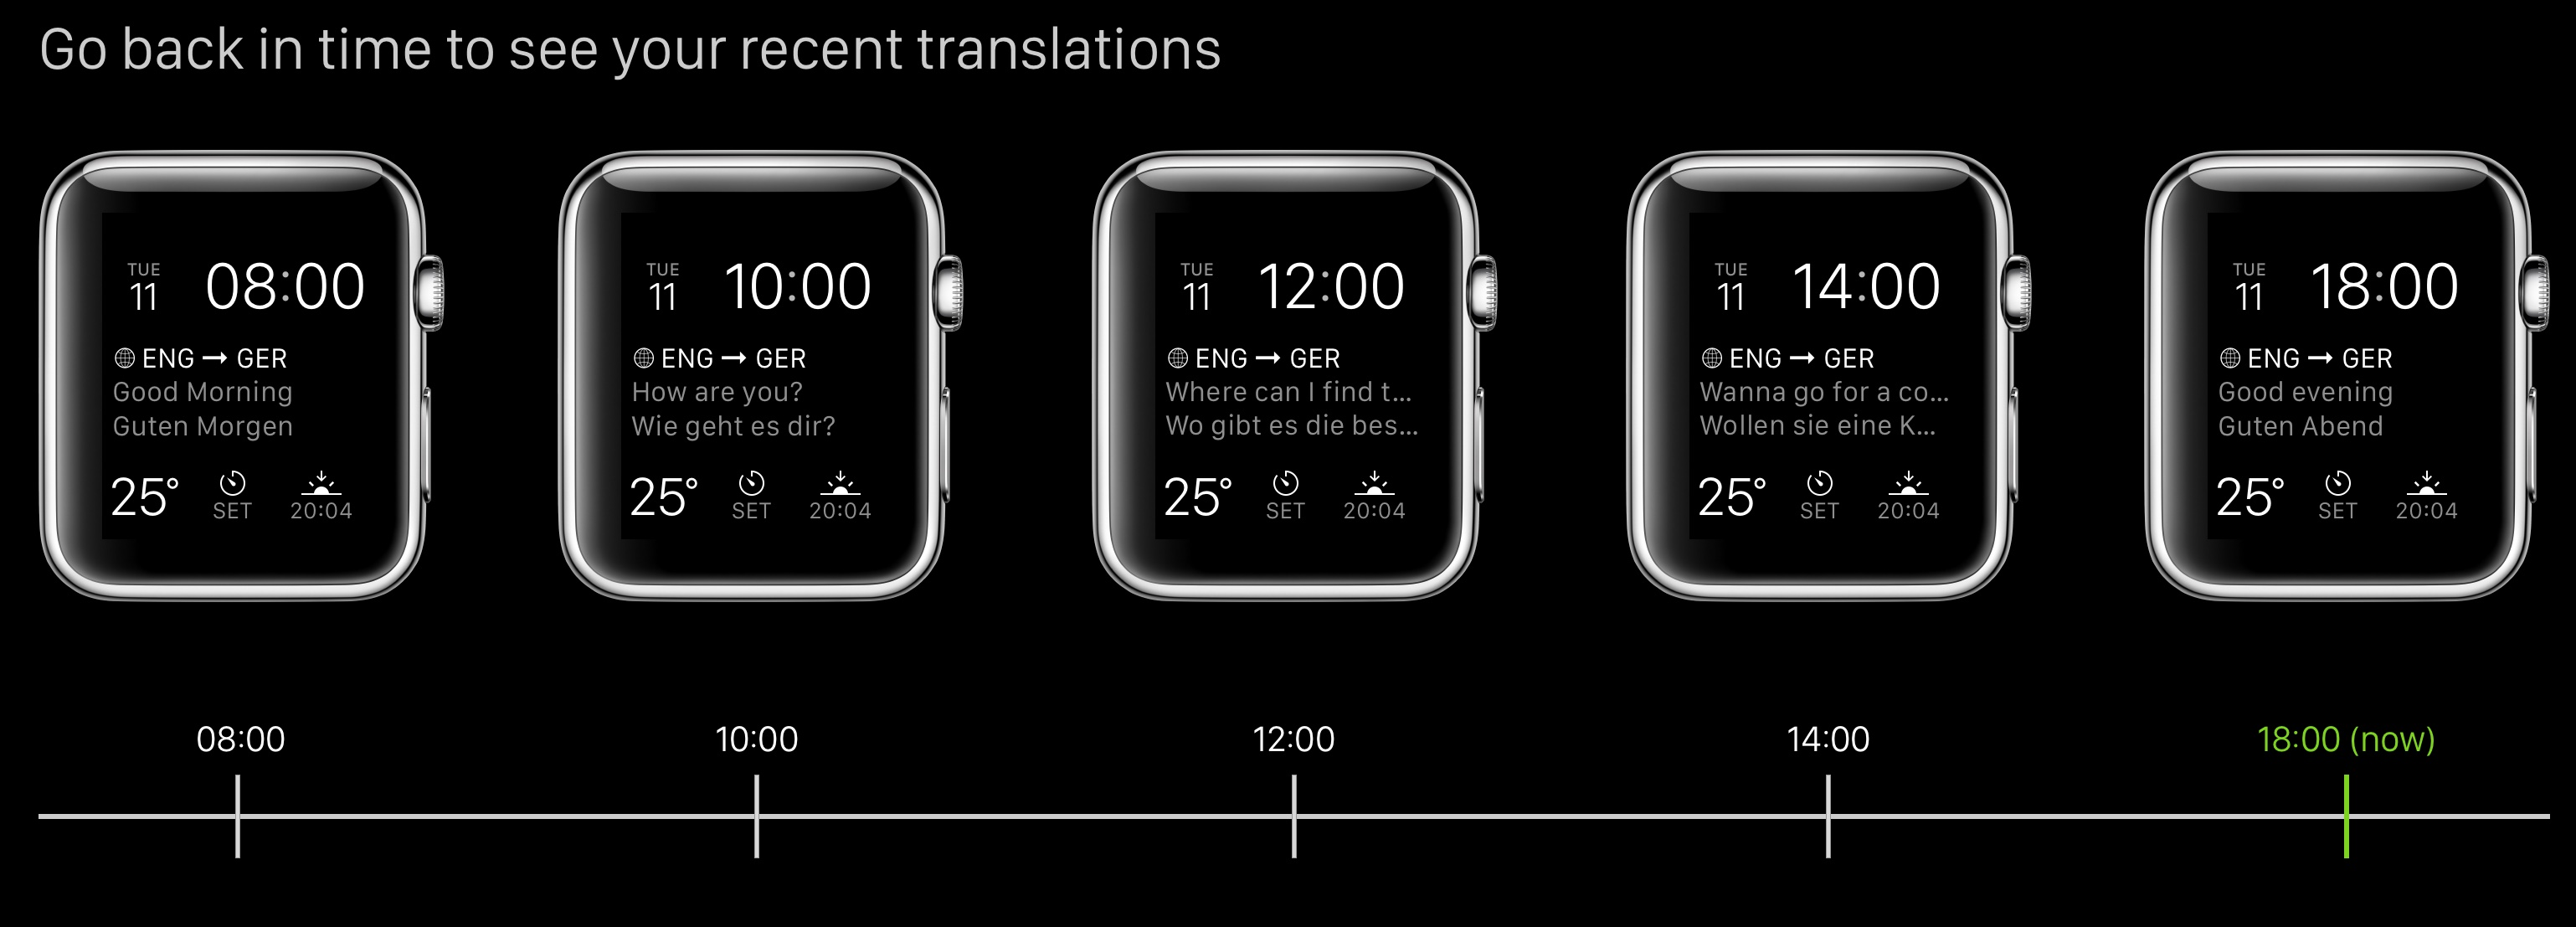 Captura de pantalla 005 de iTranslate 9.0 para iOS Apple Watch